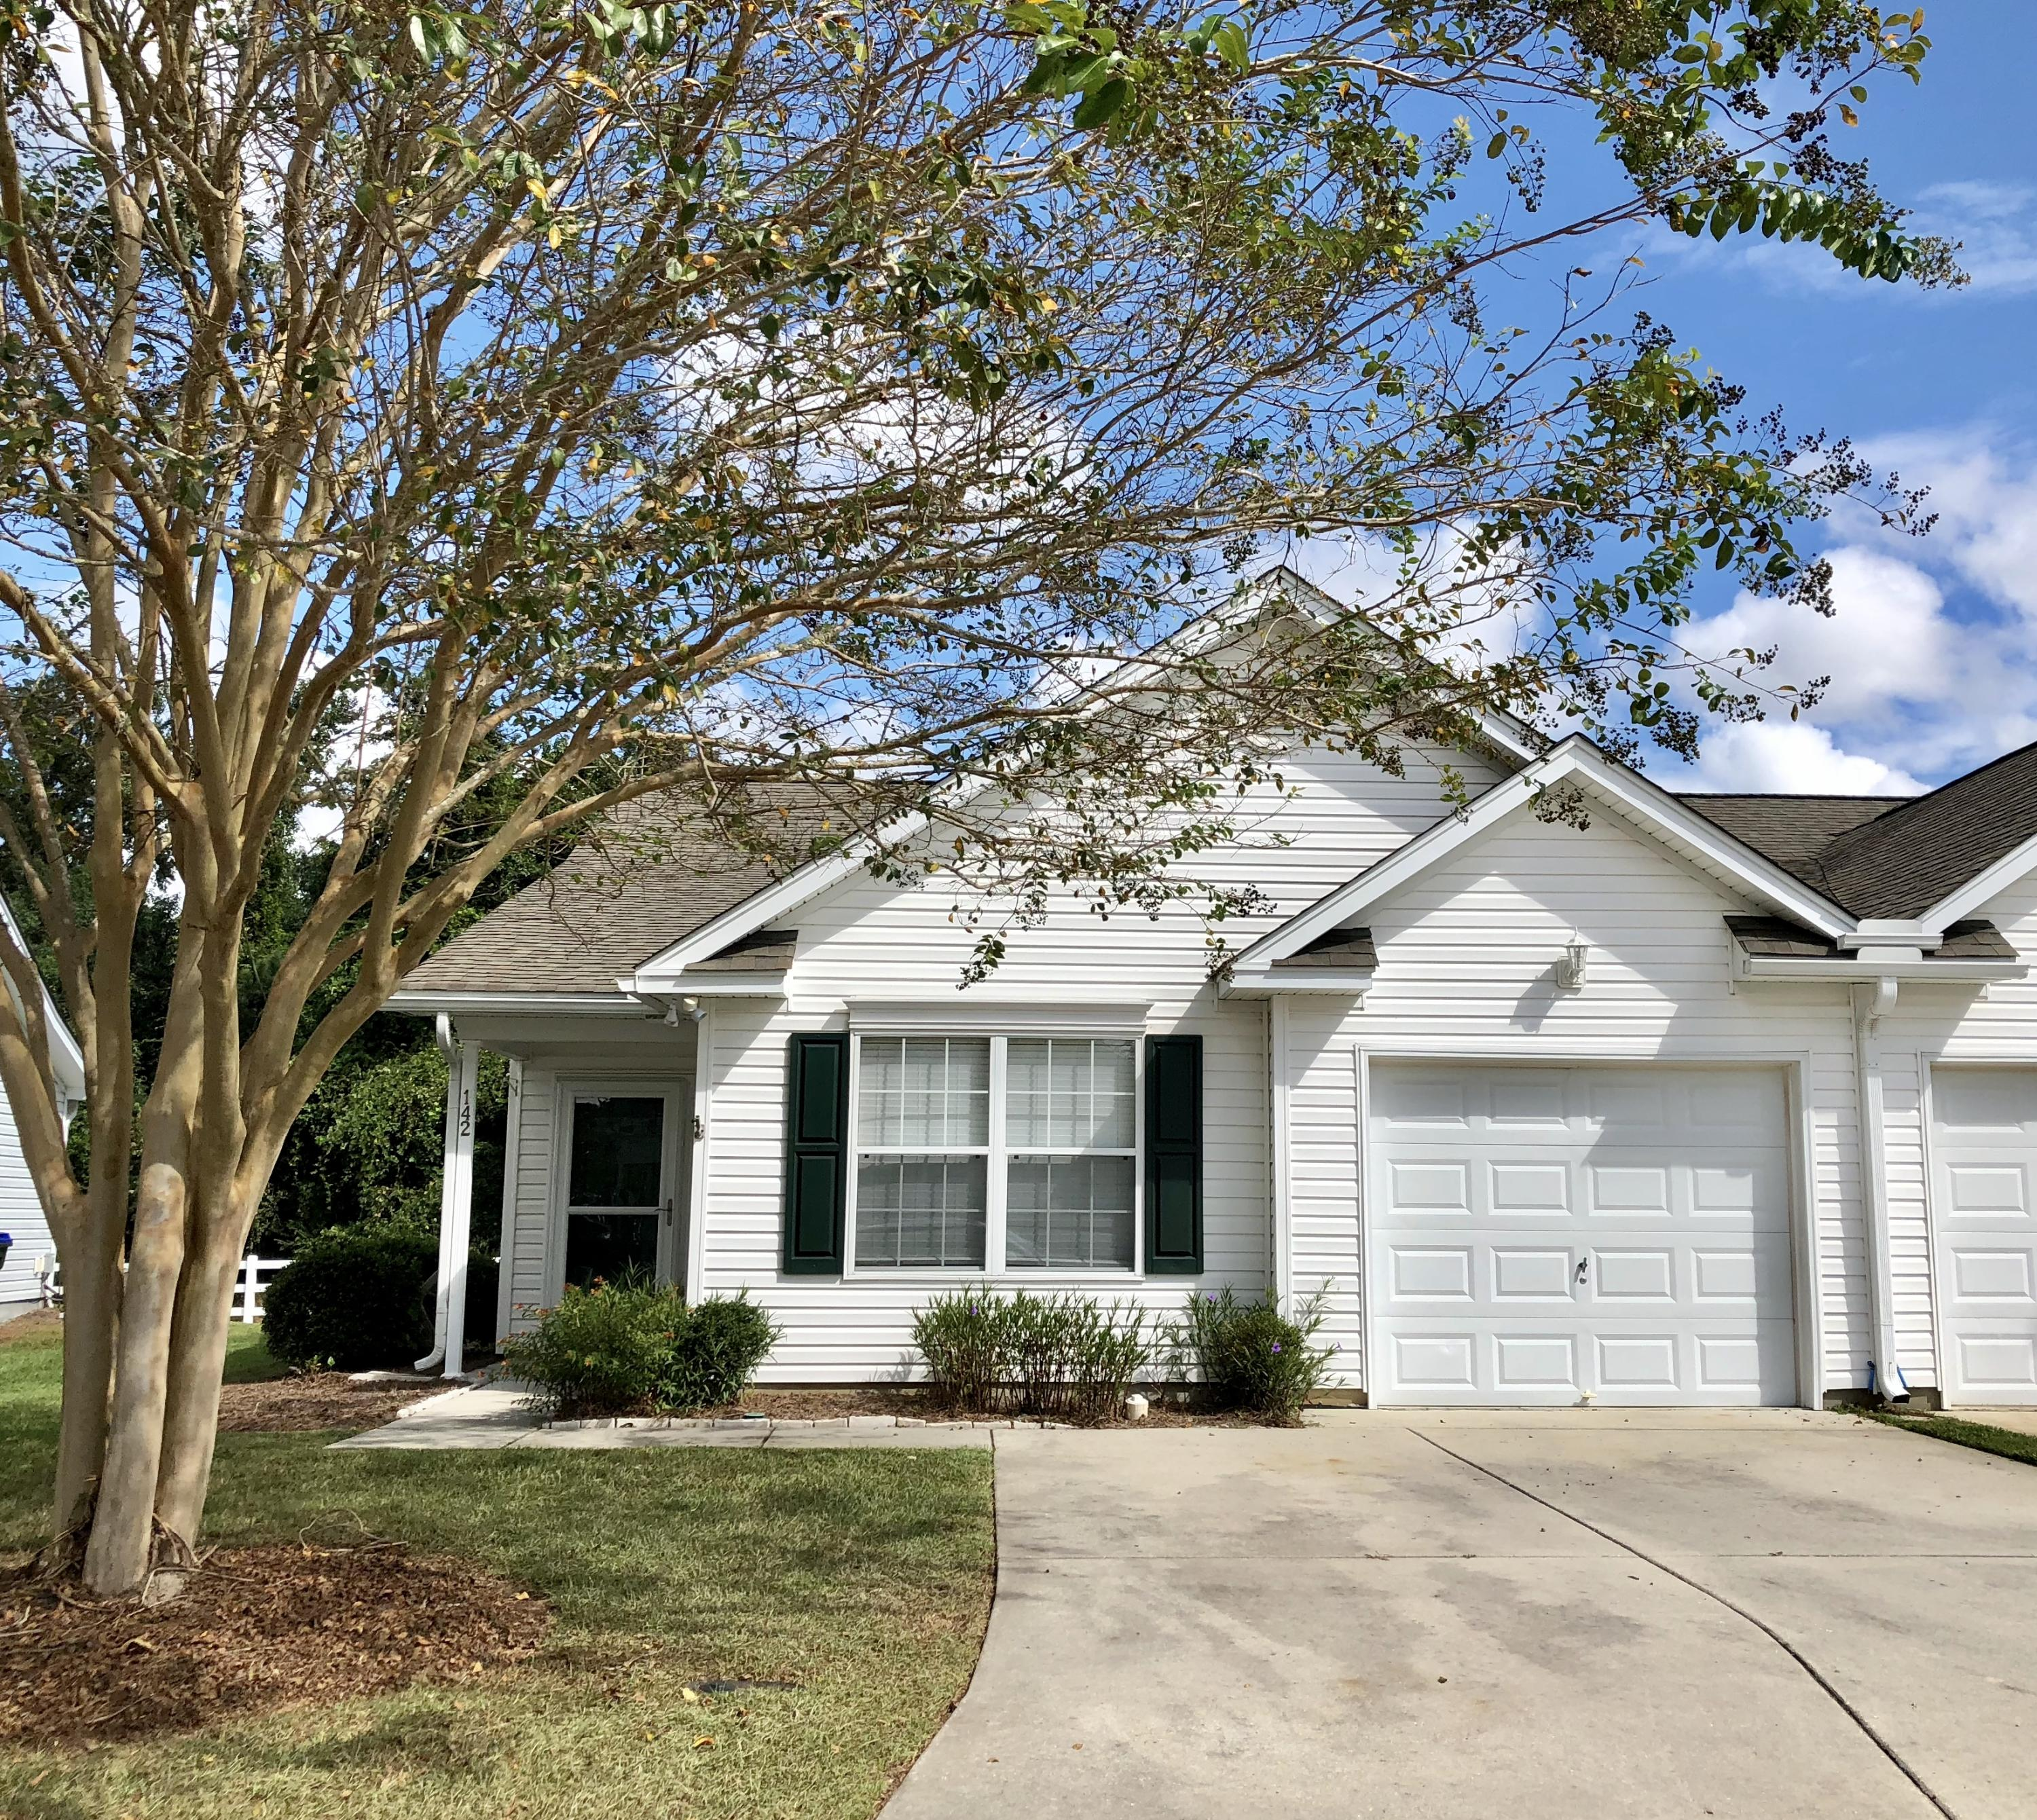 142 Townsend Way Summerville, SC 29483